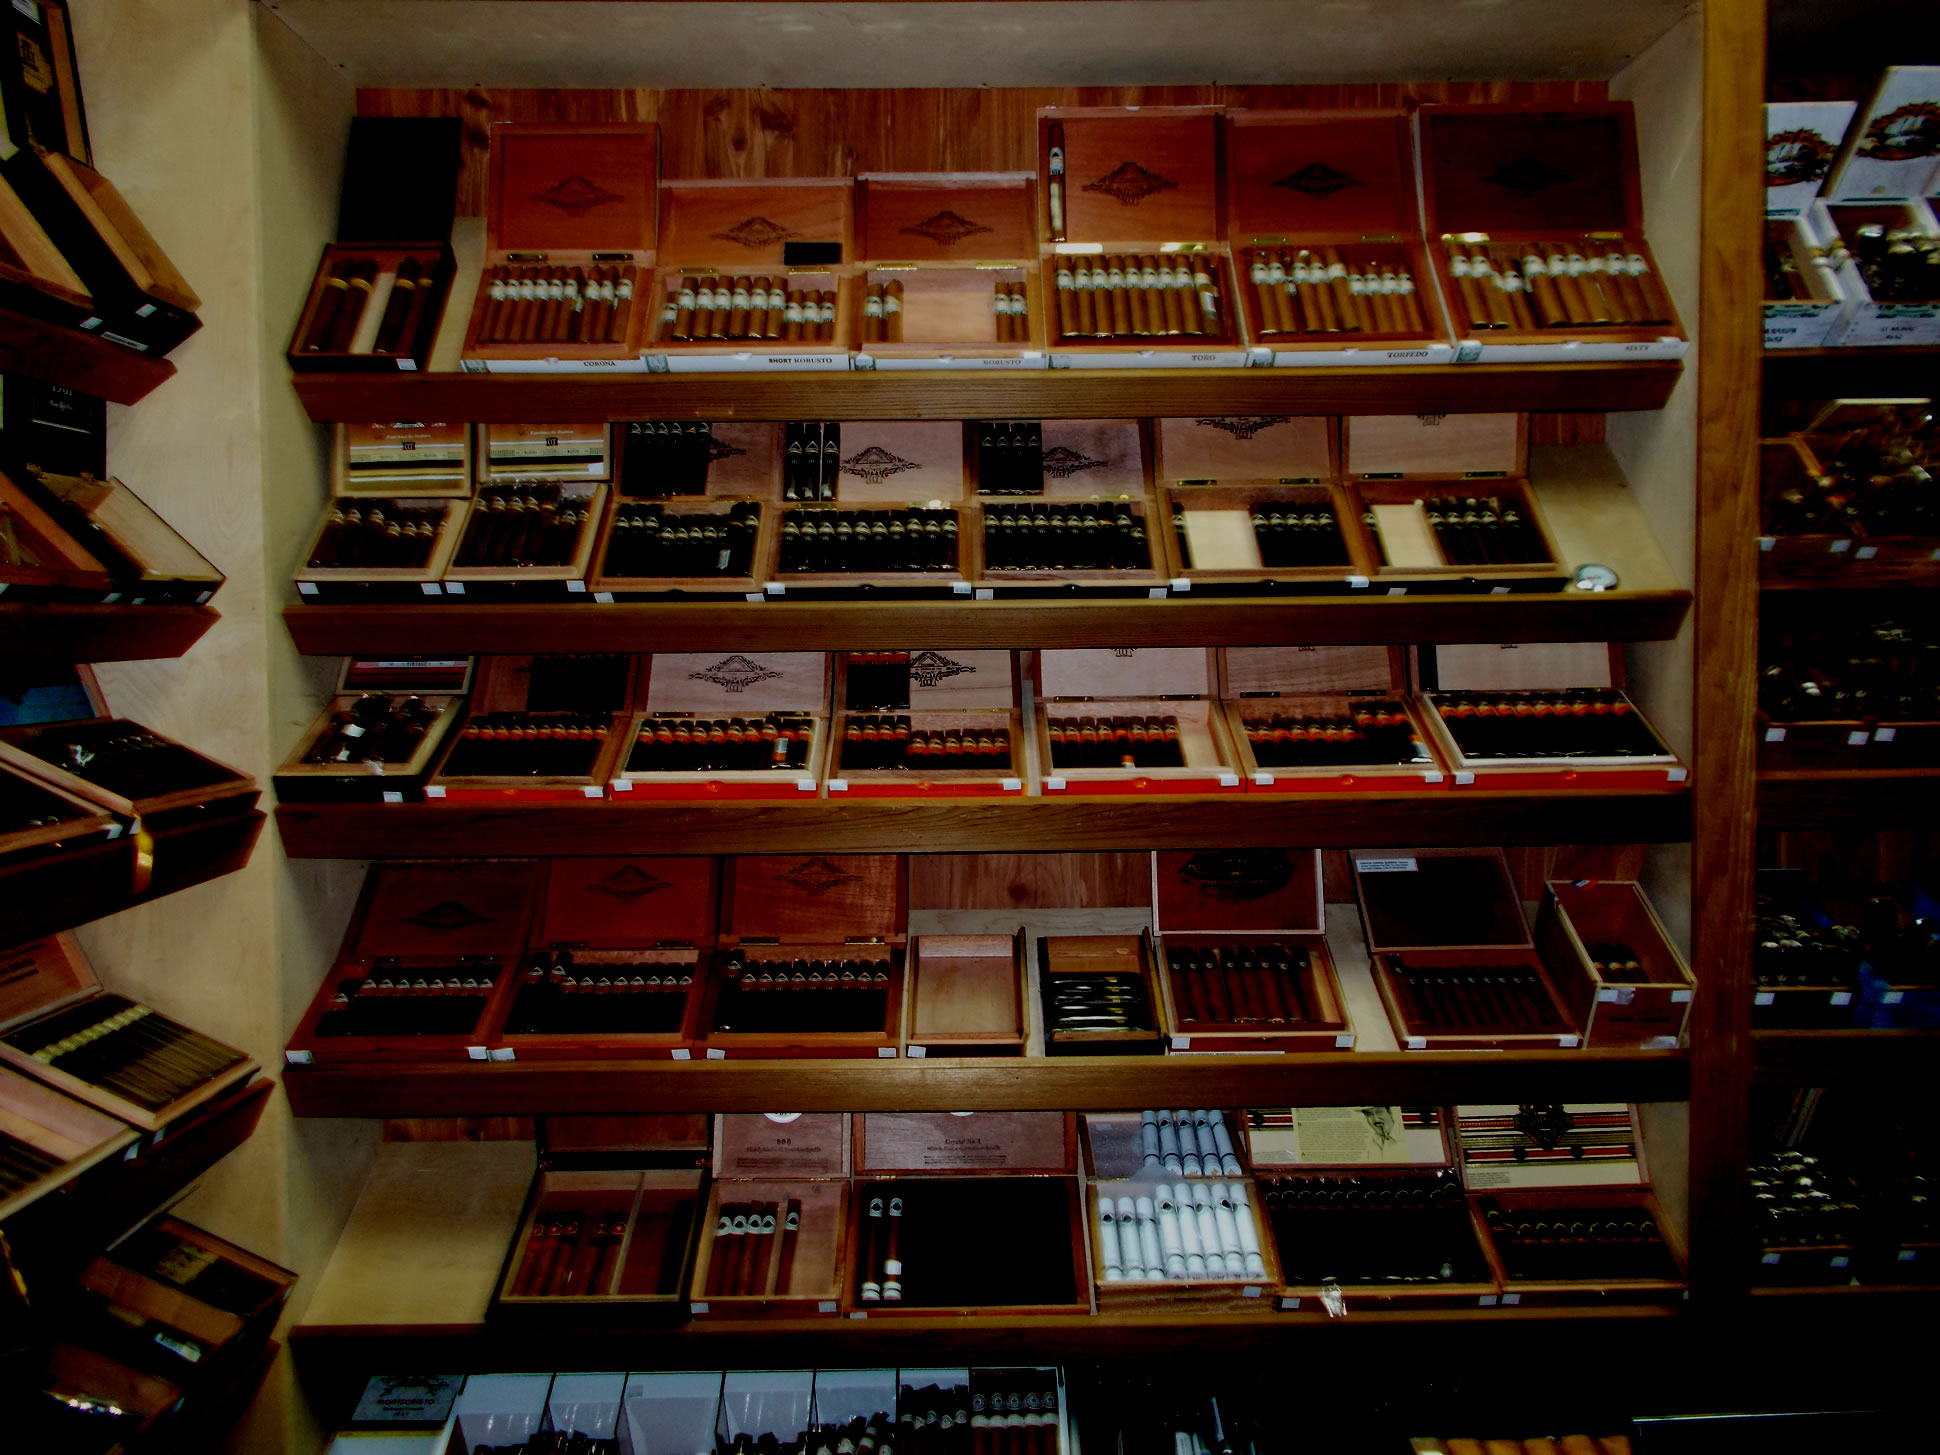 A WALK-IN HUMIDOR STOCKED FROM FLOOR TO CEILING